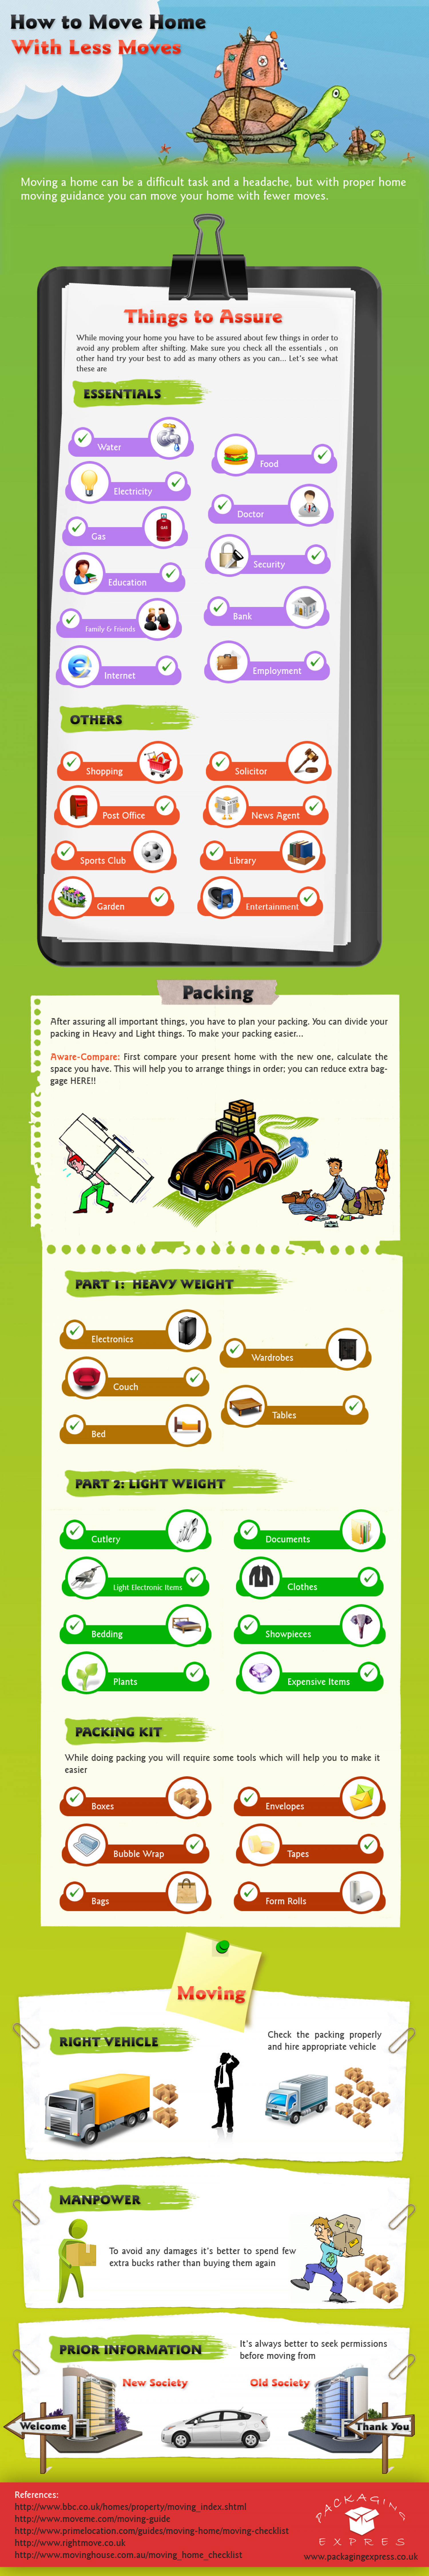 How To Move Home With Less Moves Infographic